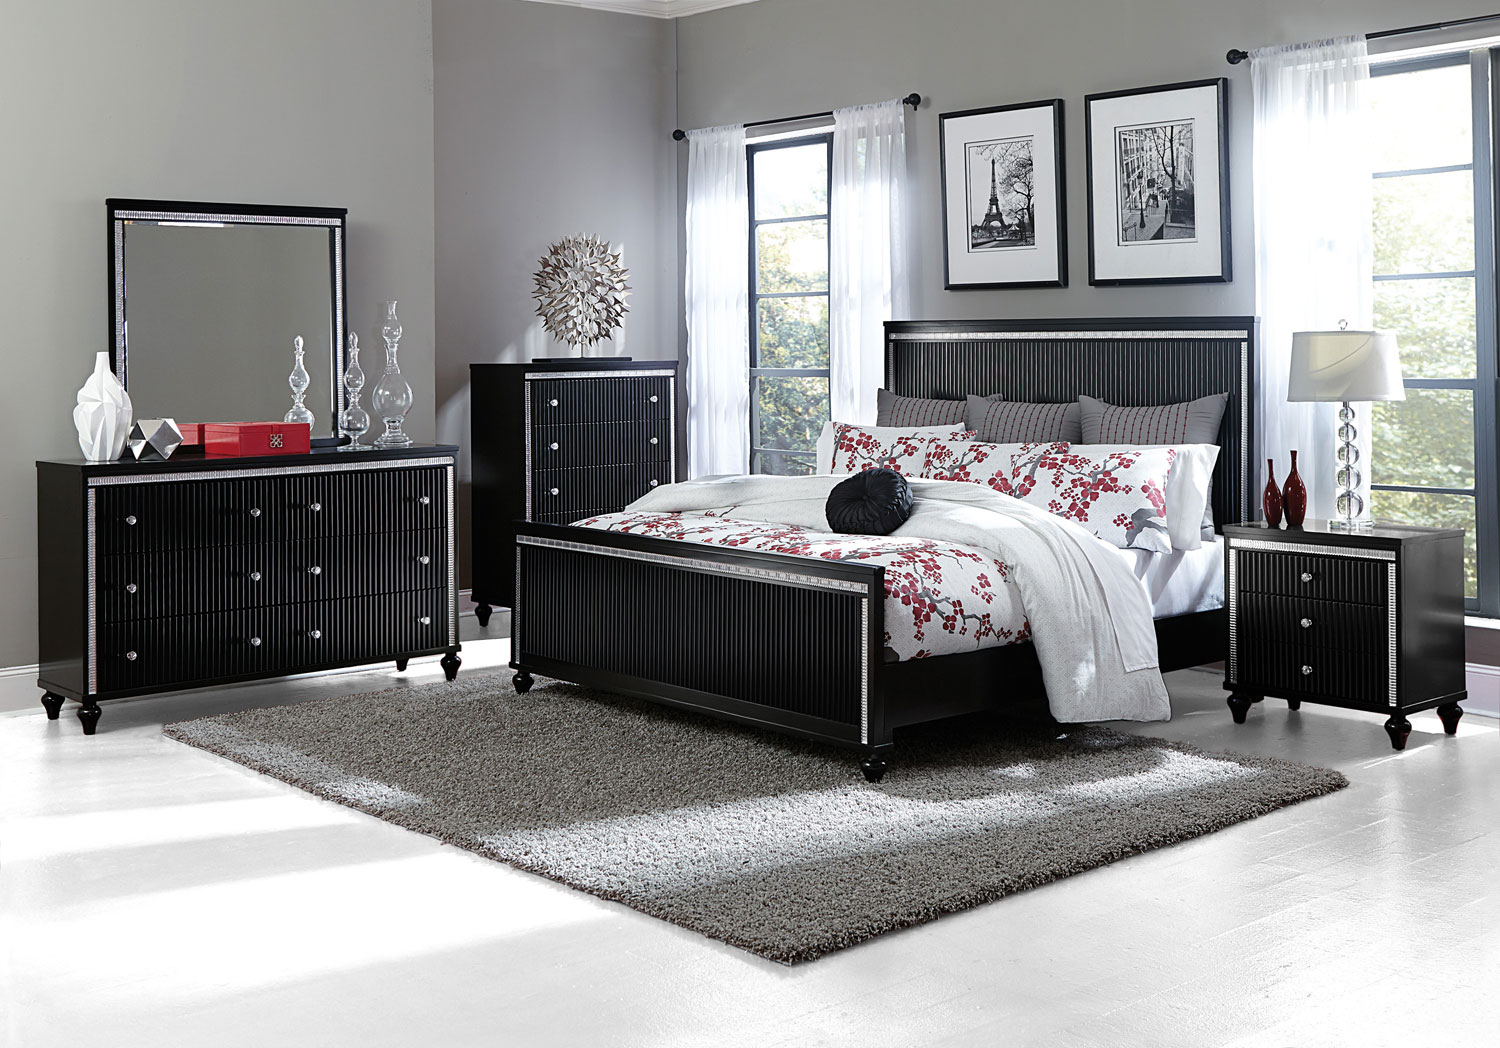 Homelegance Sakura Panel Bedroom Set Black B1941bk 1 At